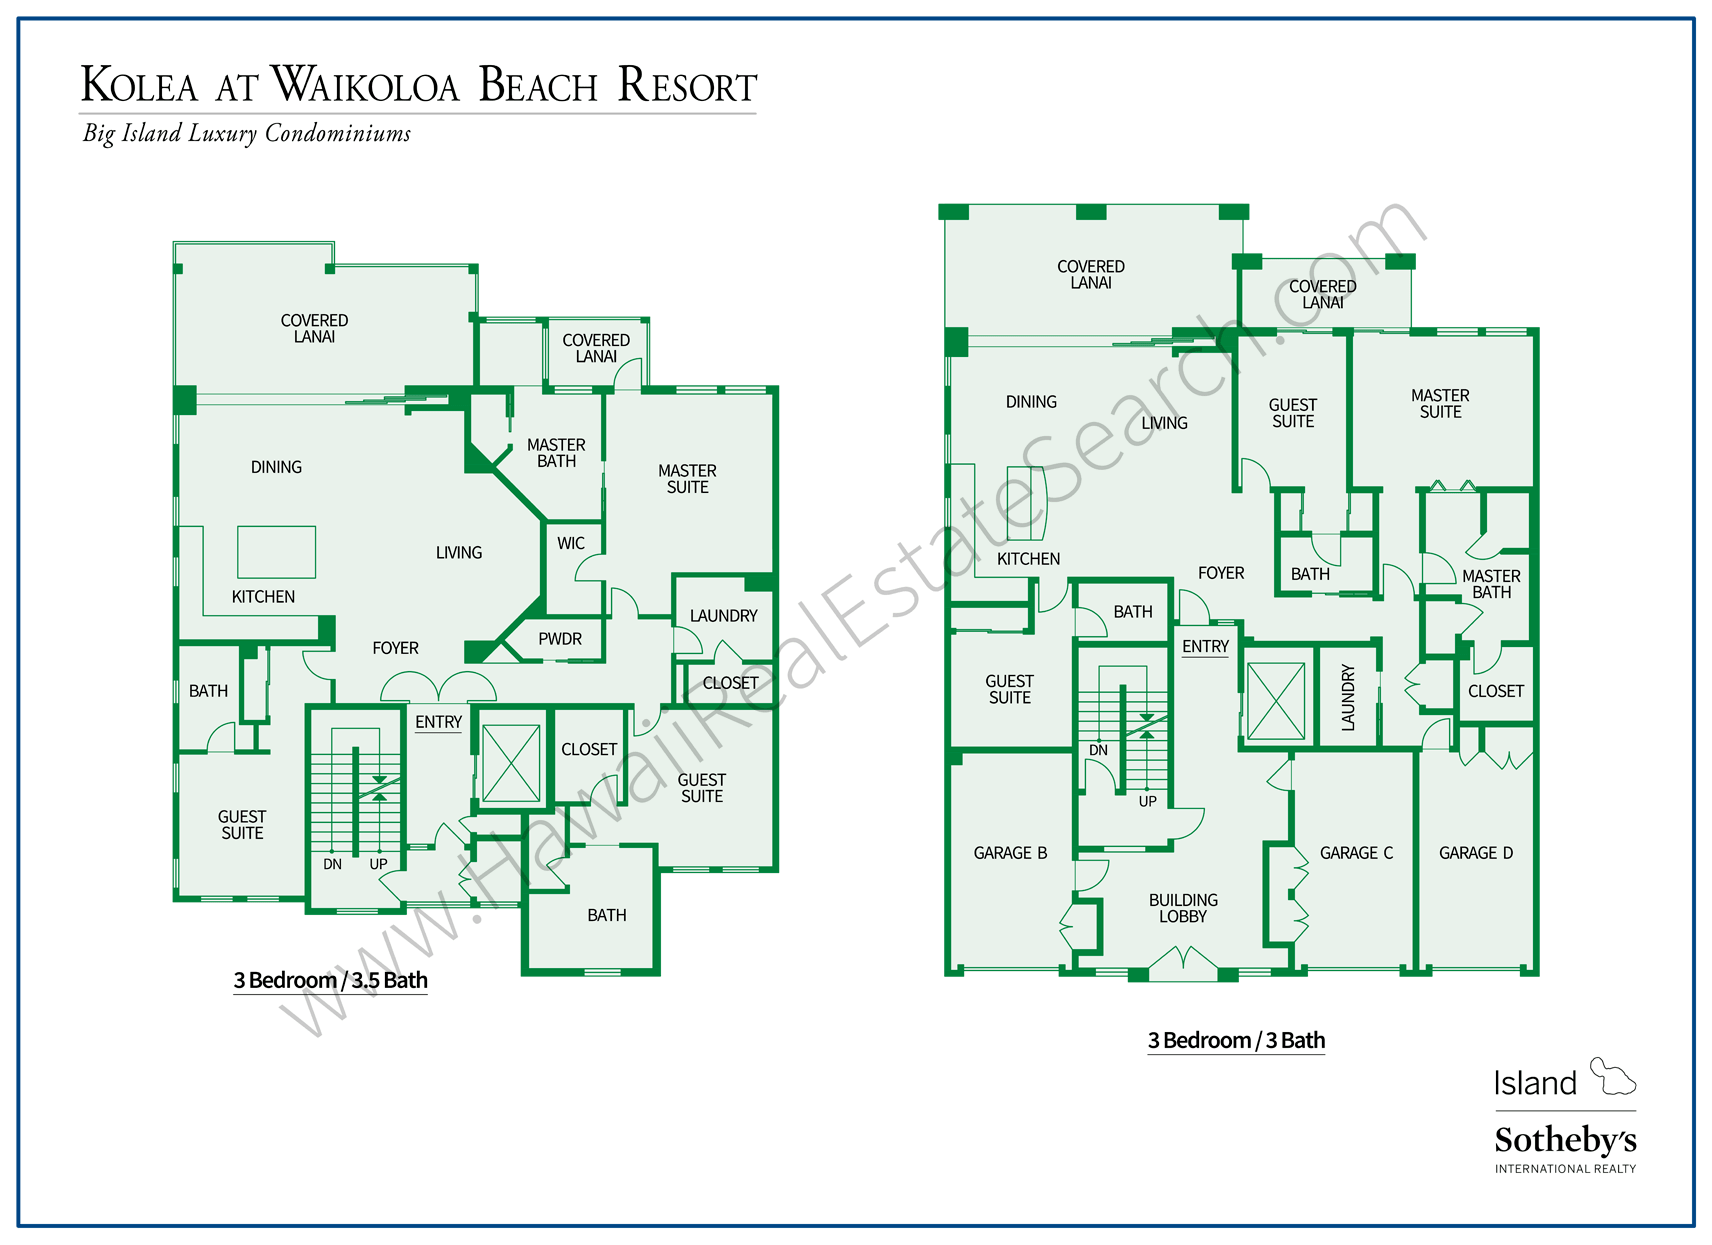 Floor Plans Kolea at Waikoloa